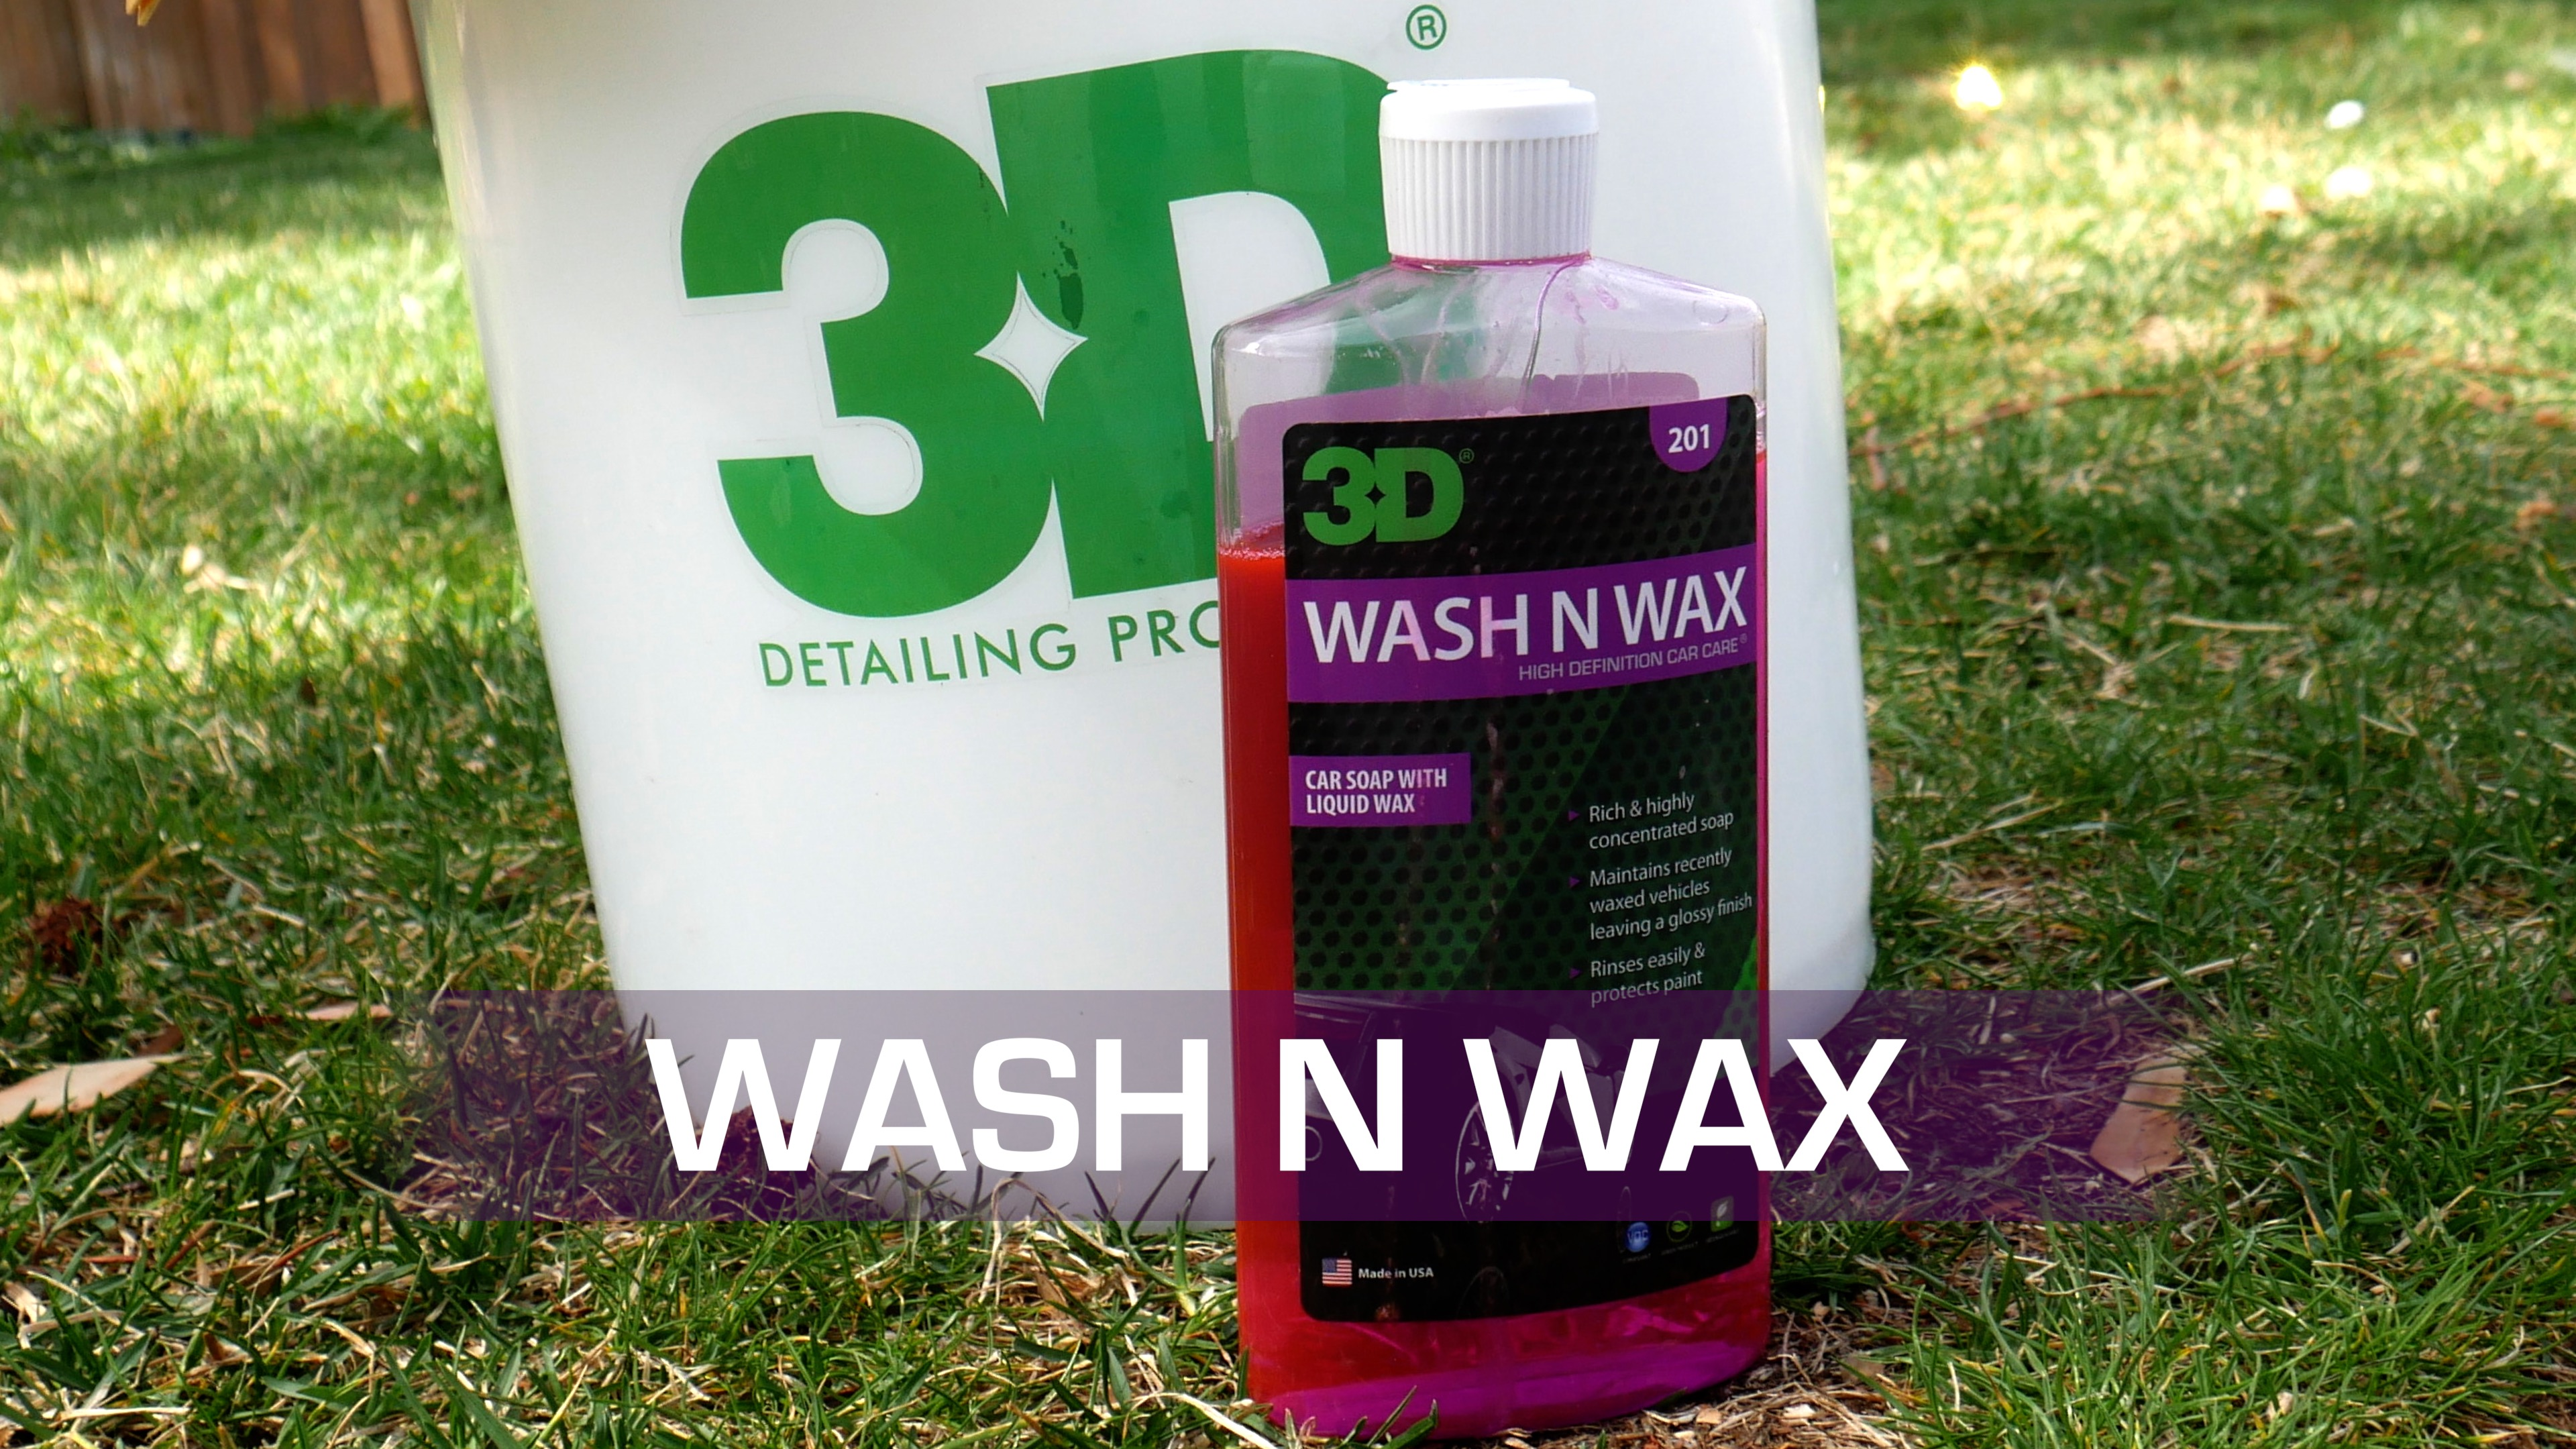 costco-wash-n-wax-short.jpg